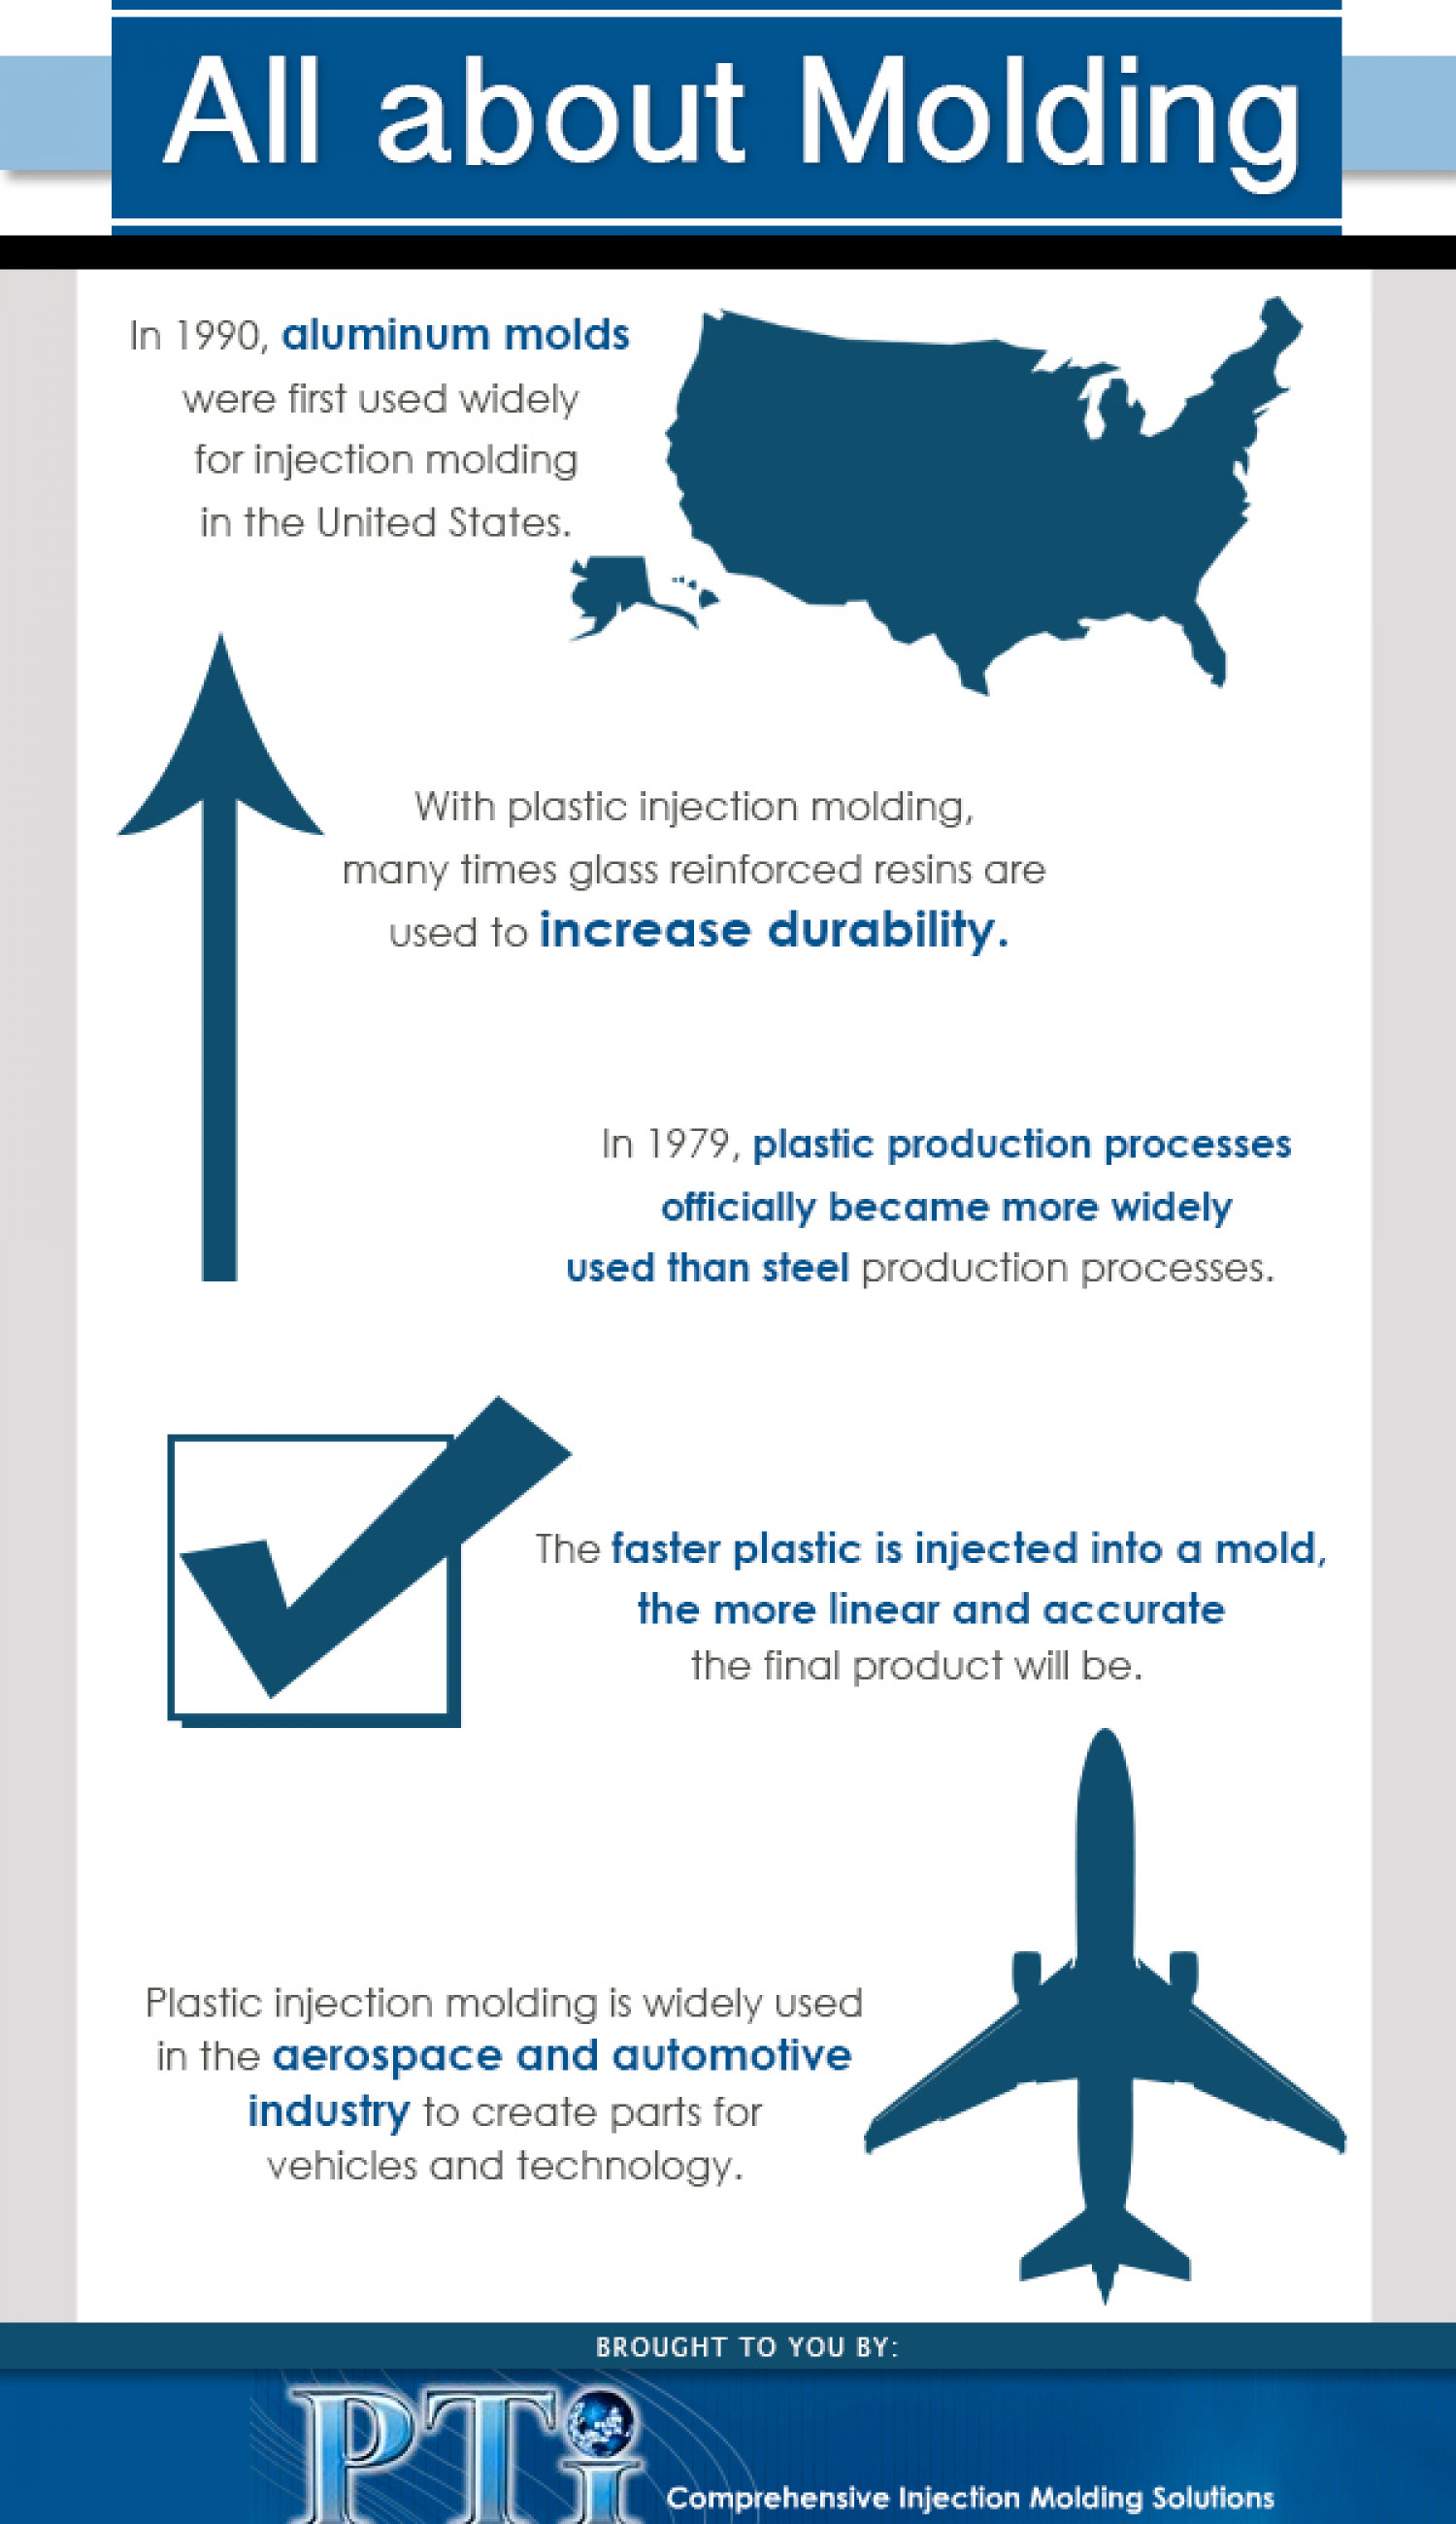 All About Molding Infographic